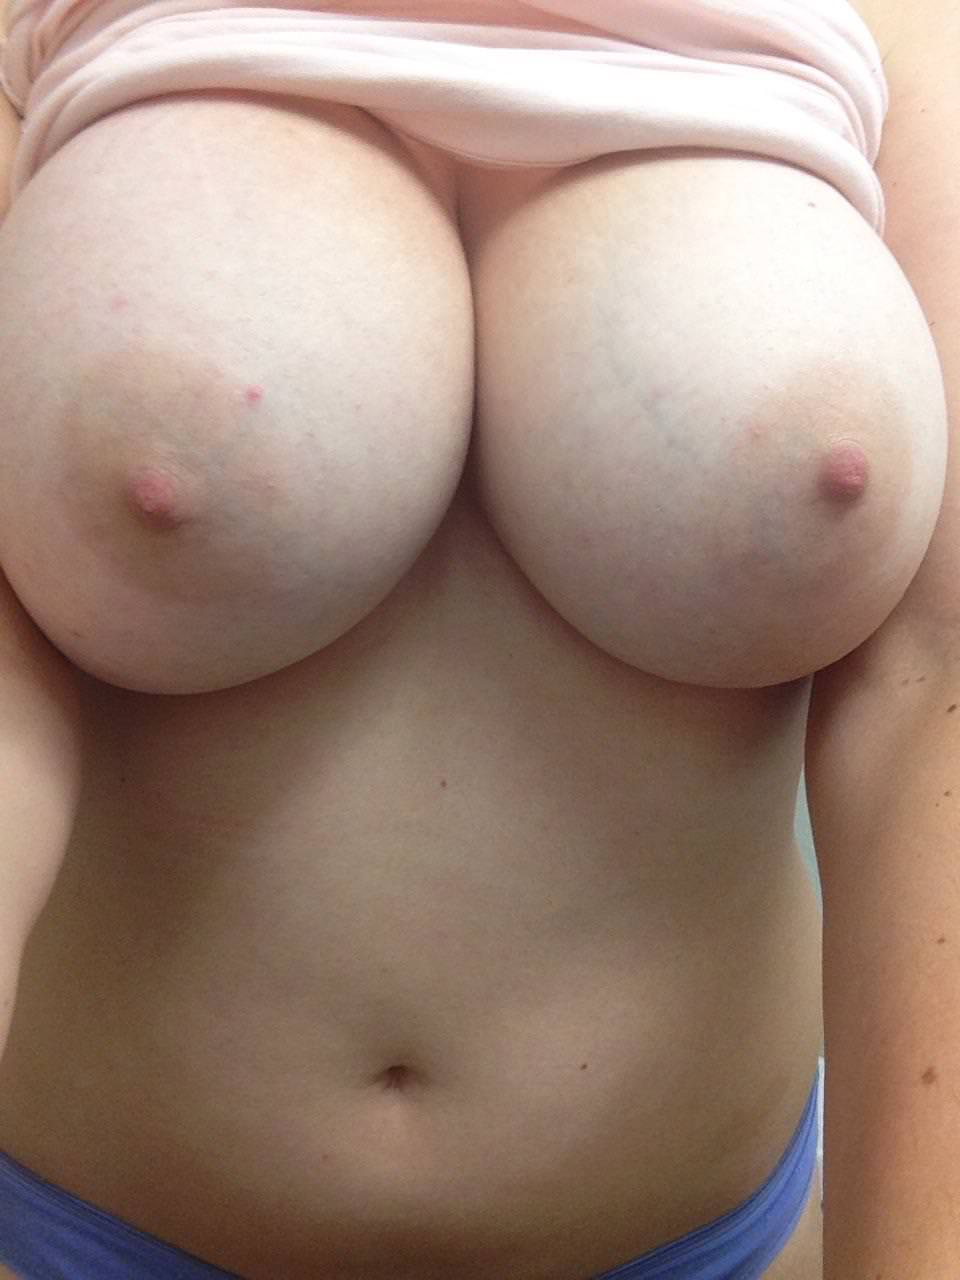 giant boobs with Women